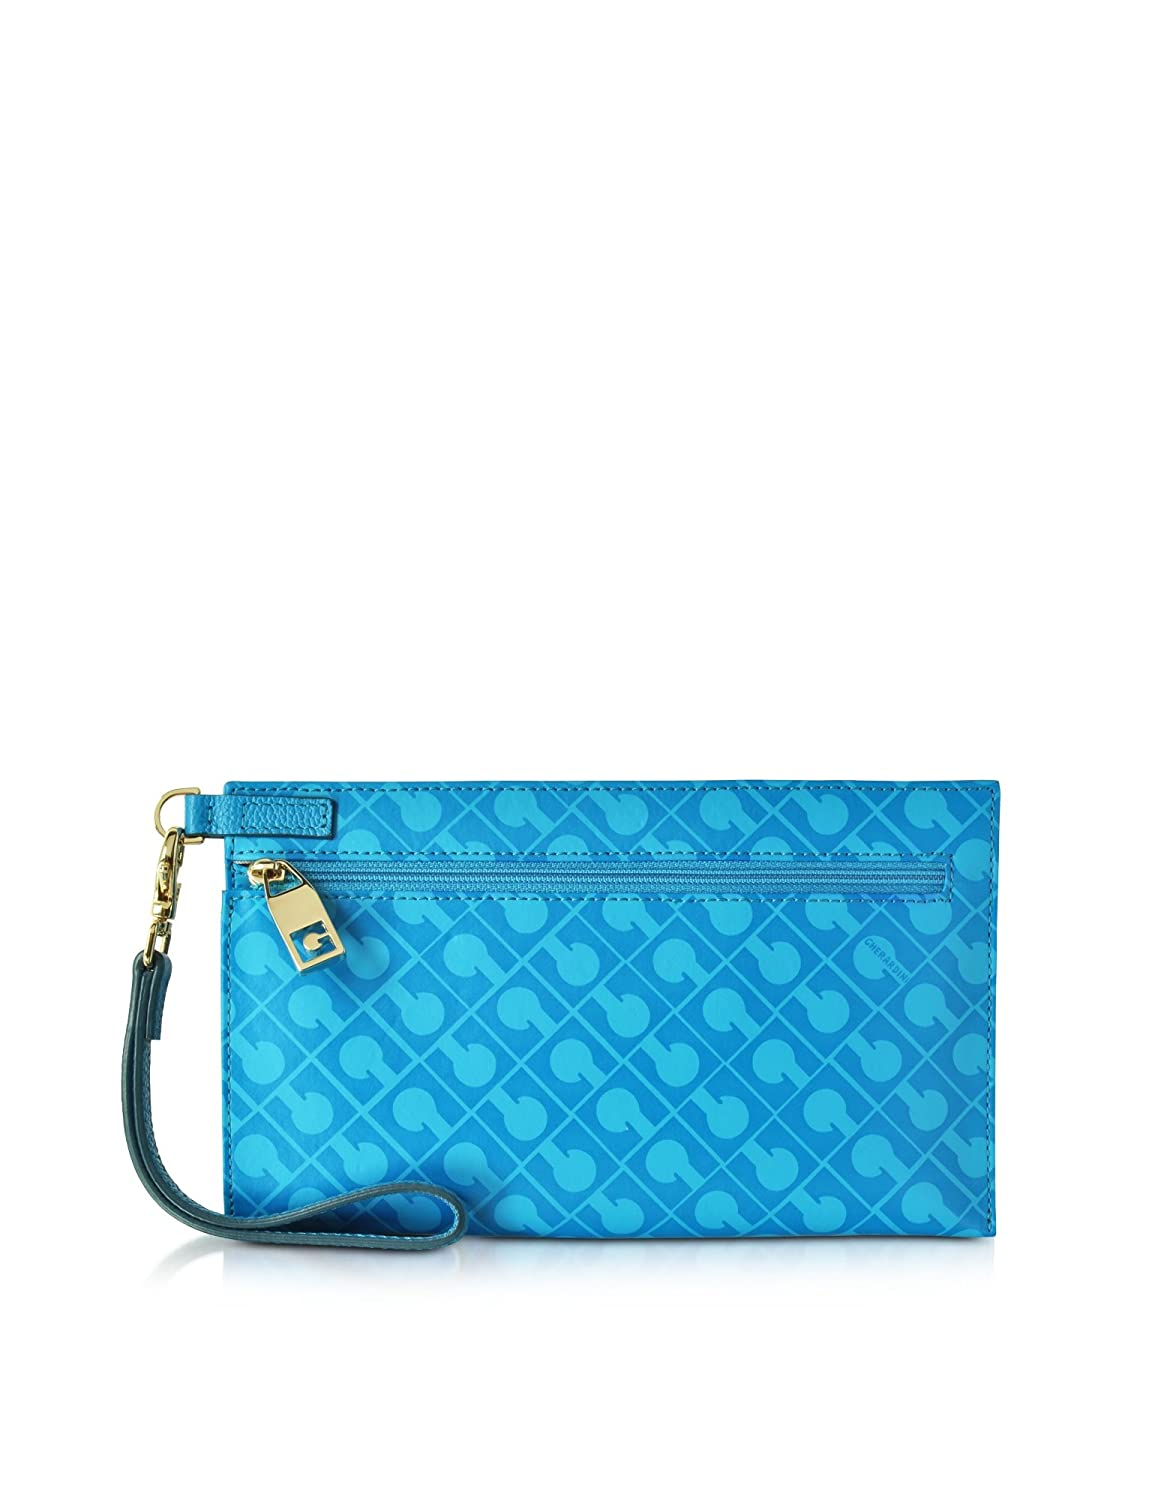 GHERARDINI WOMEN'S GH2576TP2243 LIGHT BLUE FABRIC CLUTCH